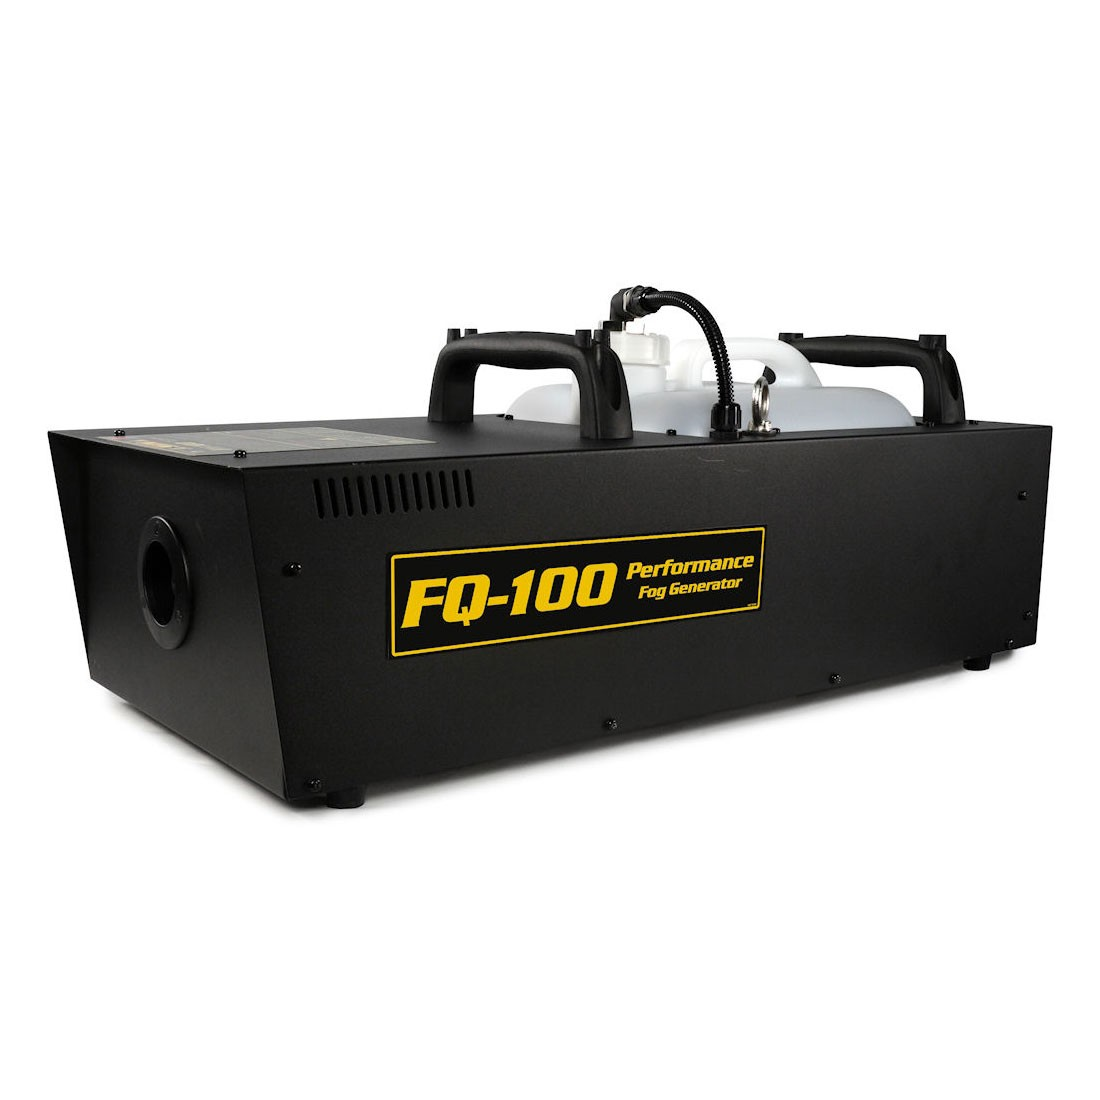 NEW High End Systems FQ-100 Fog Machine